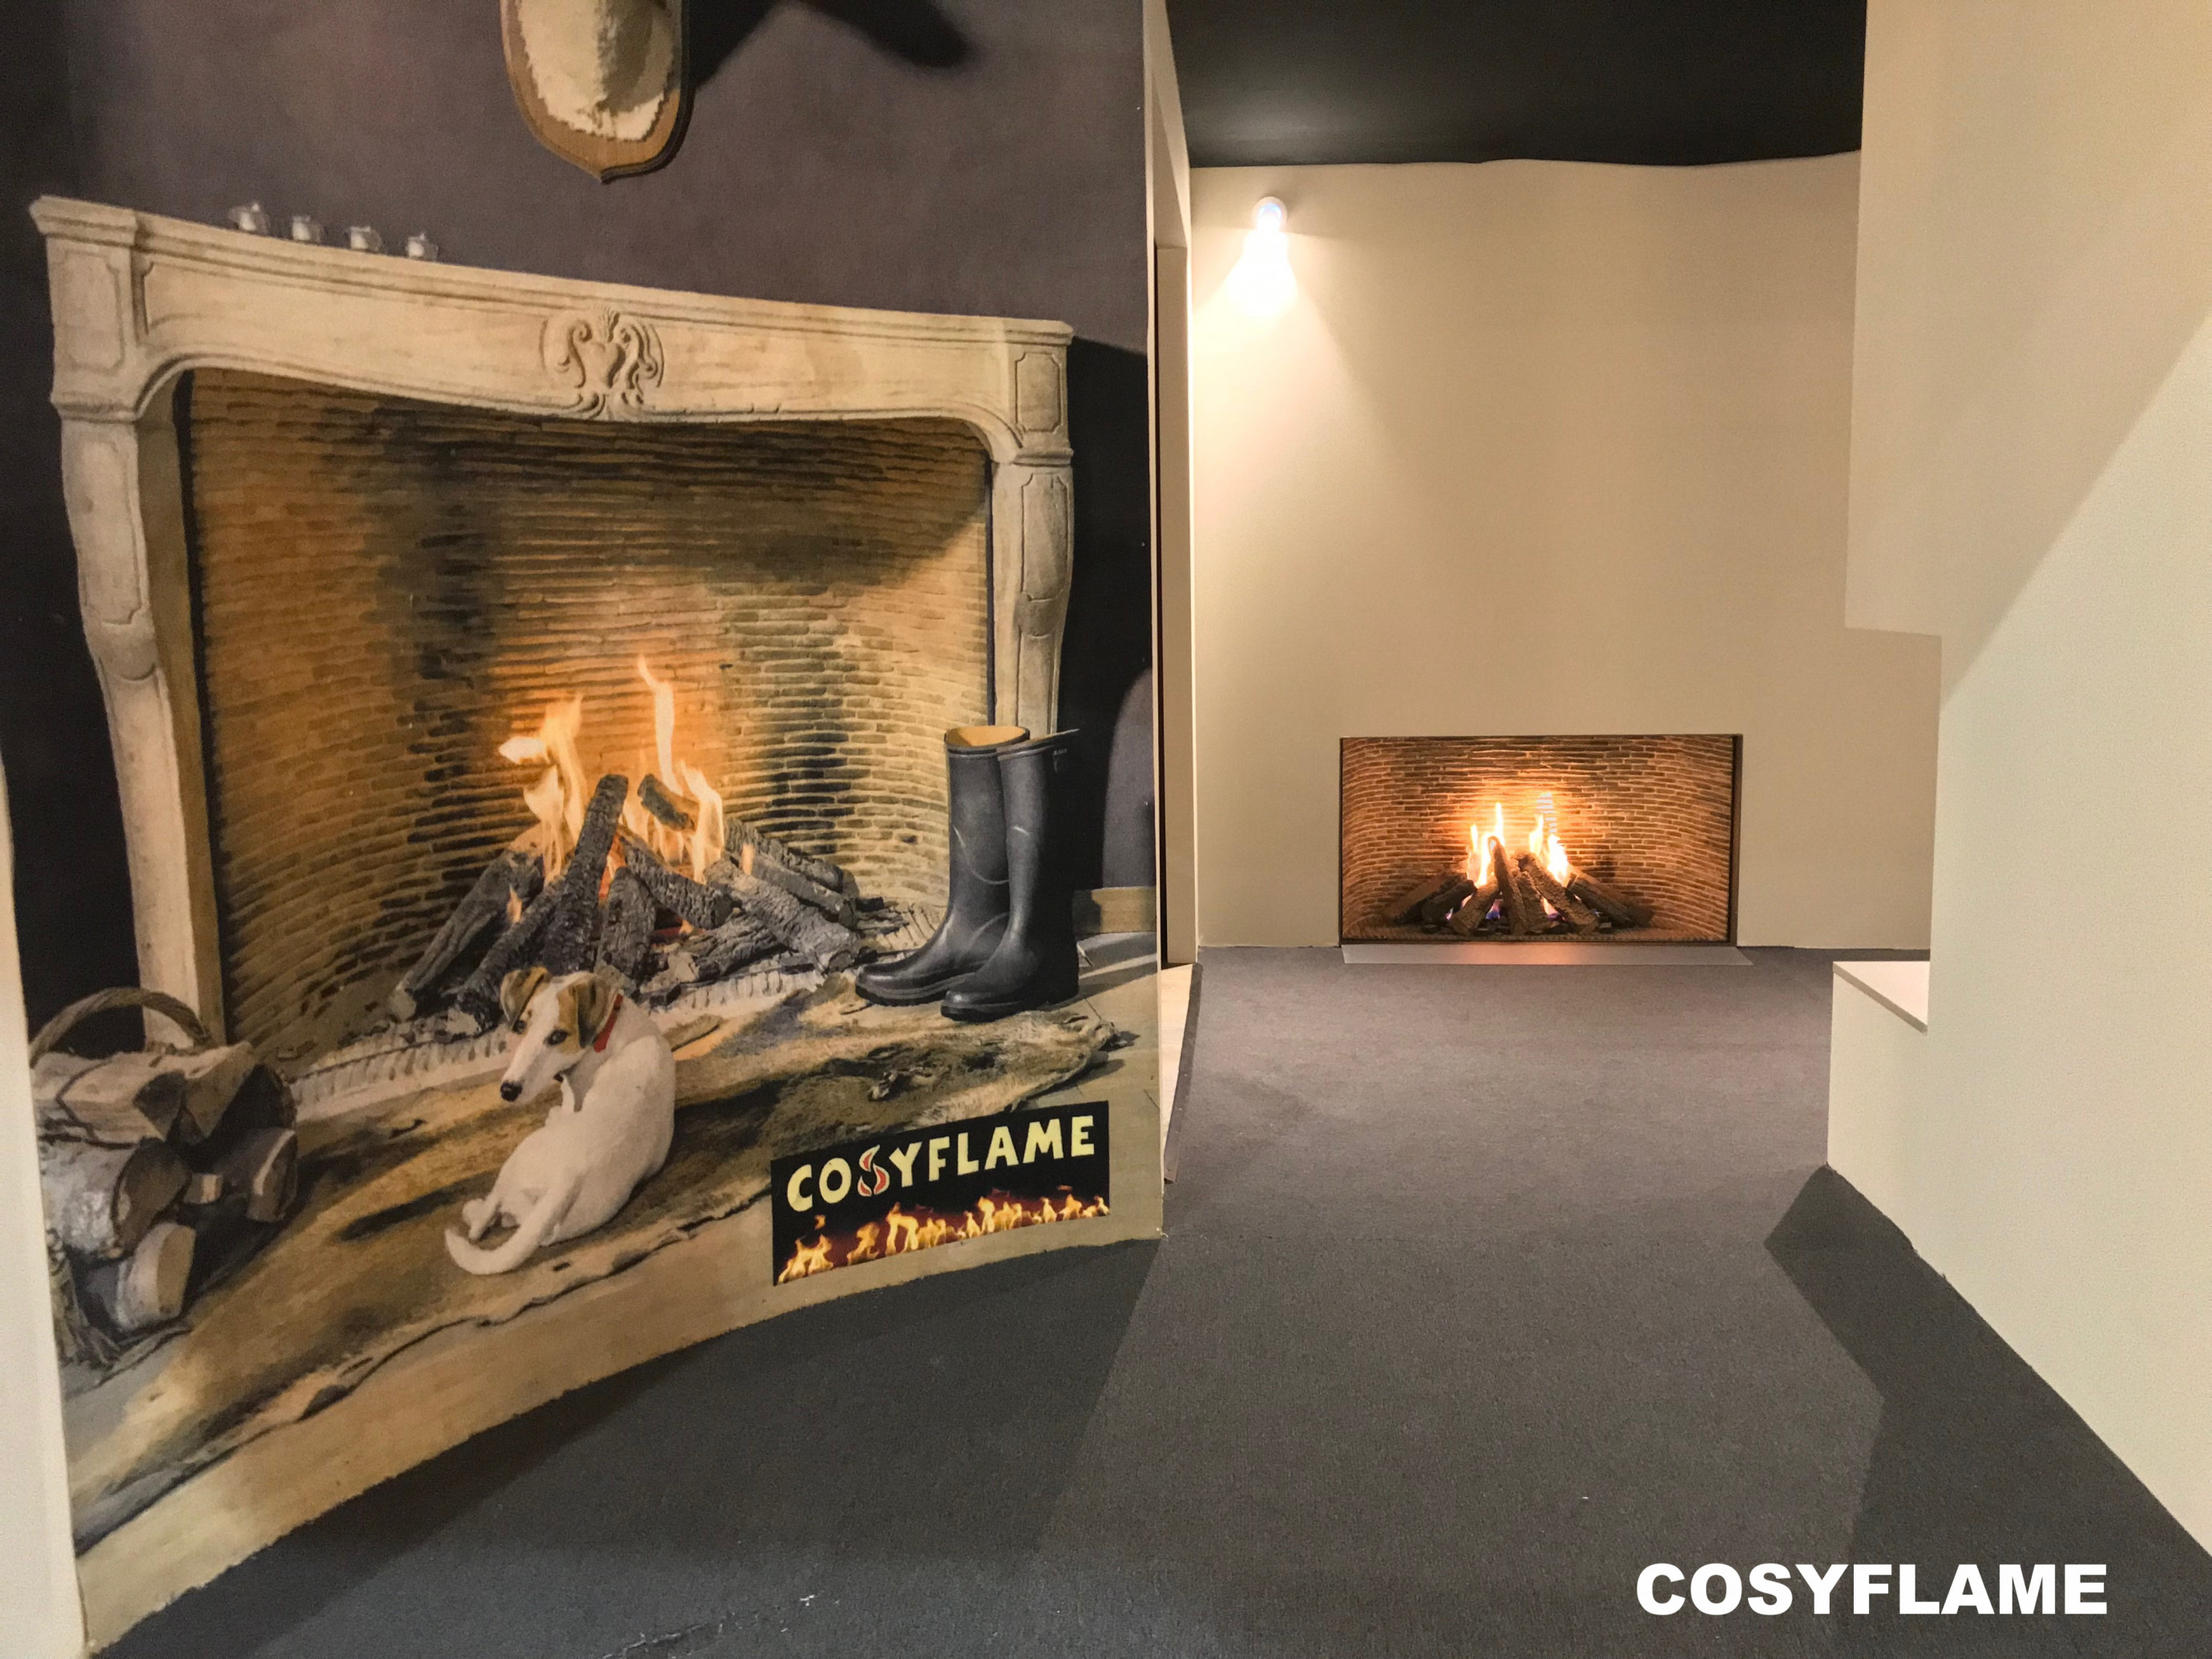 Cosyflame-Beurzen-file3-10.jpeg